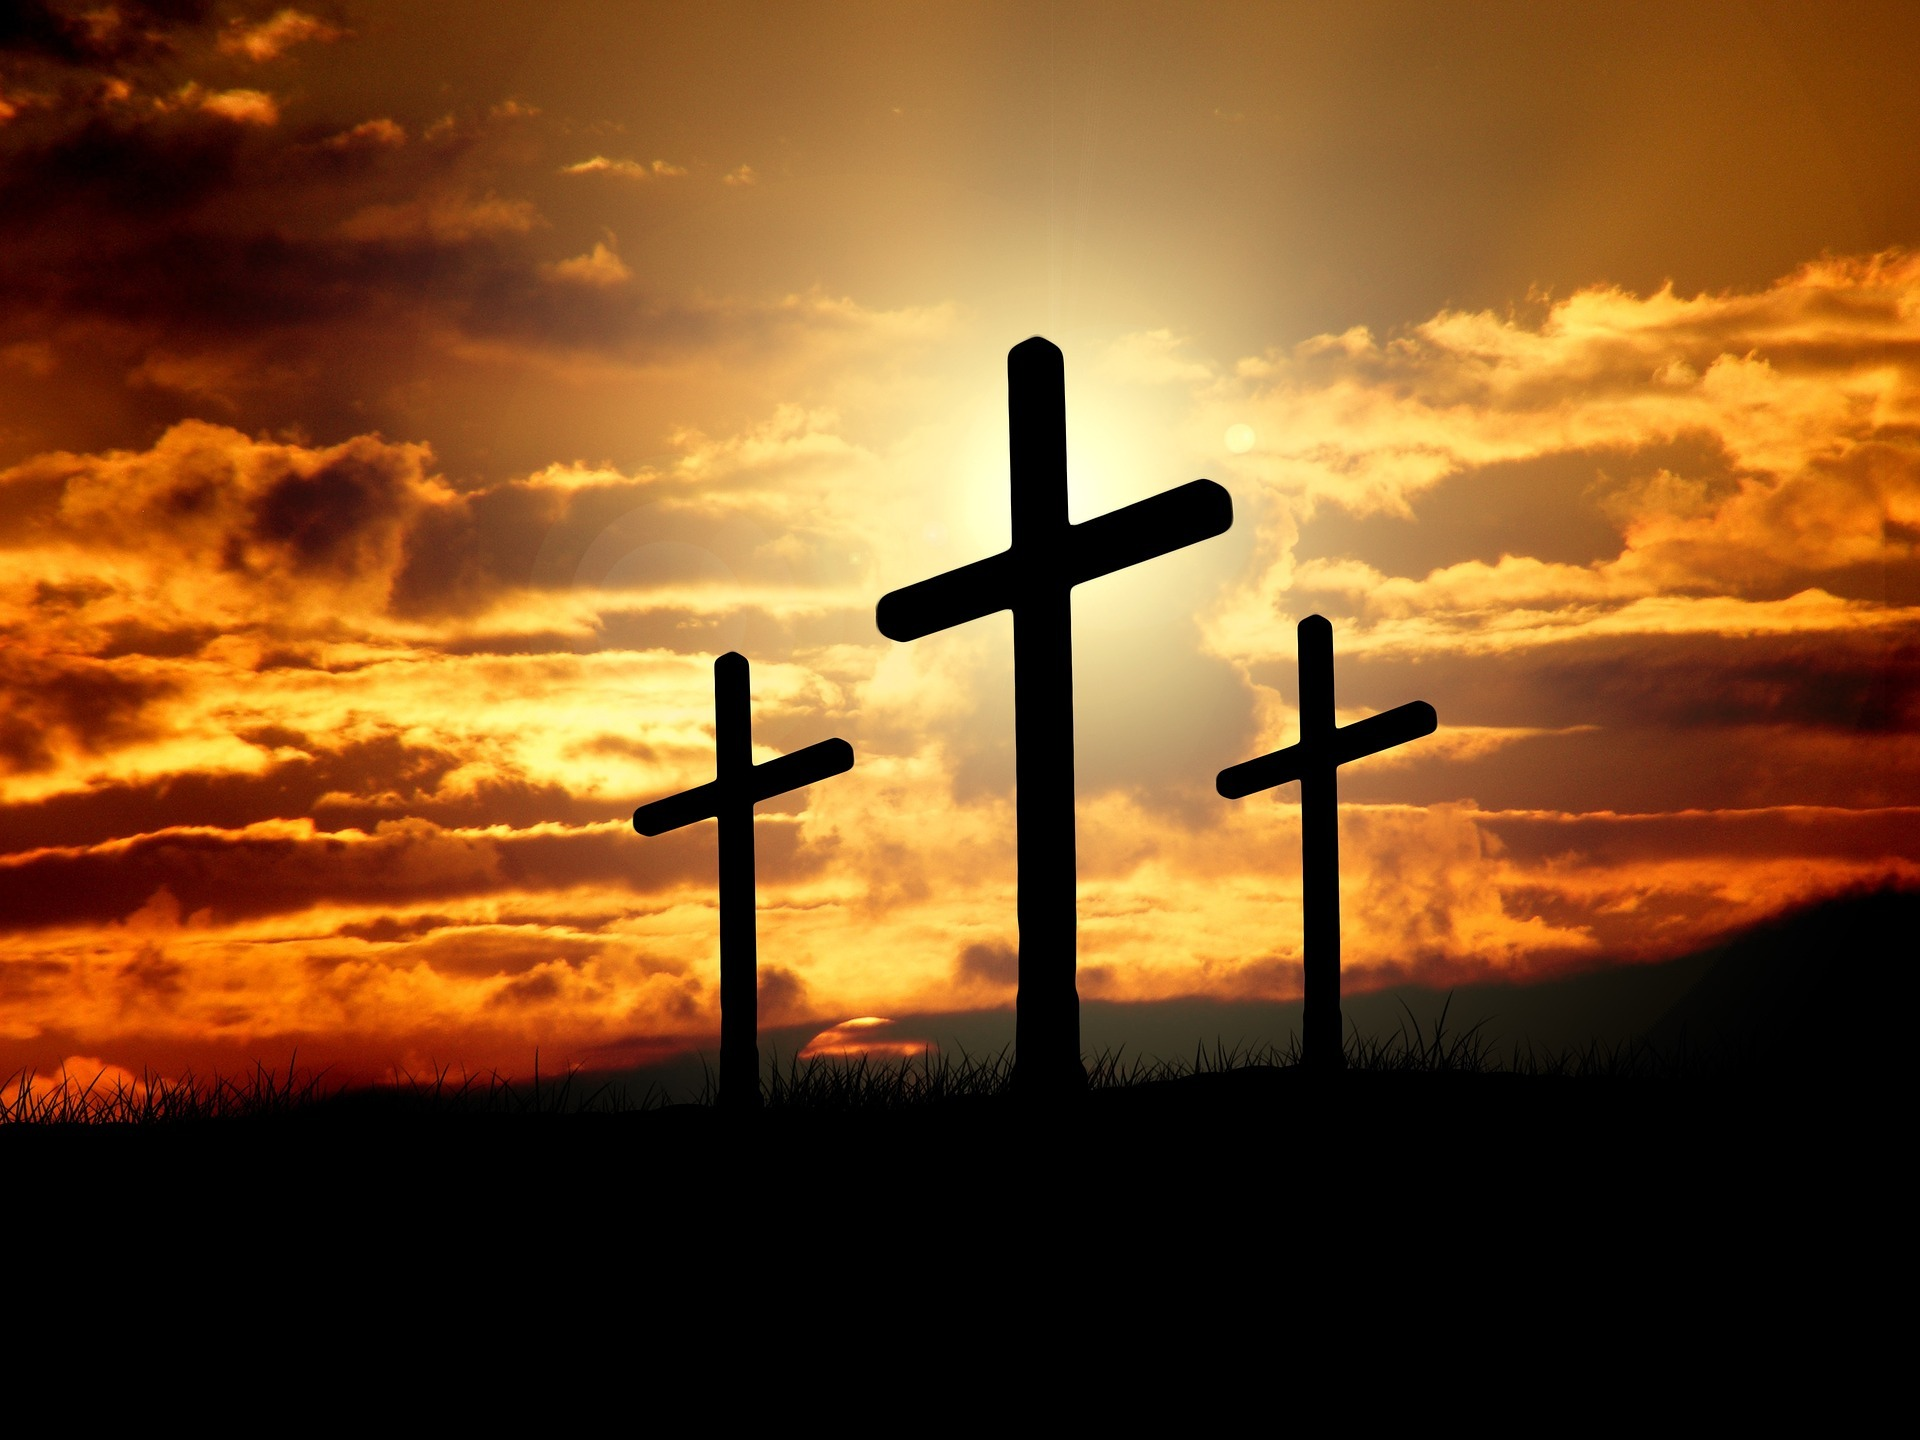 (1) The Cross and the Crucified